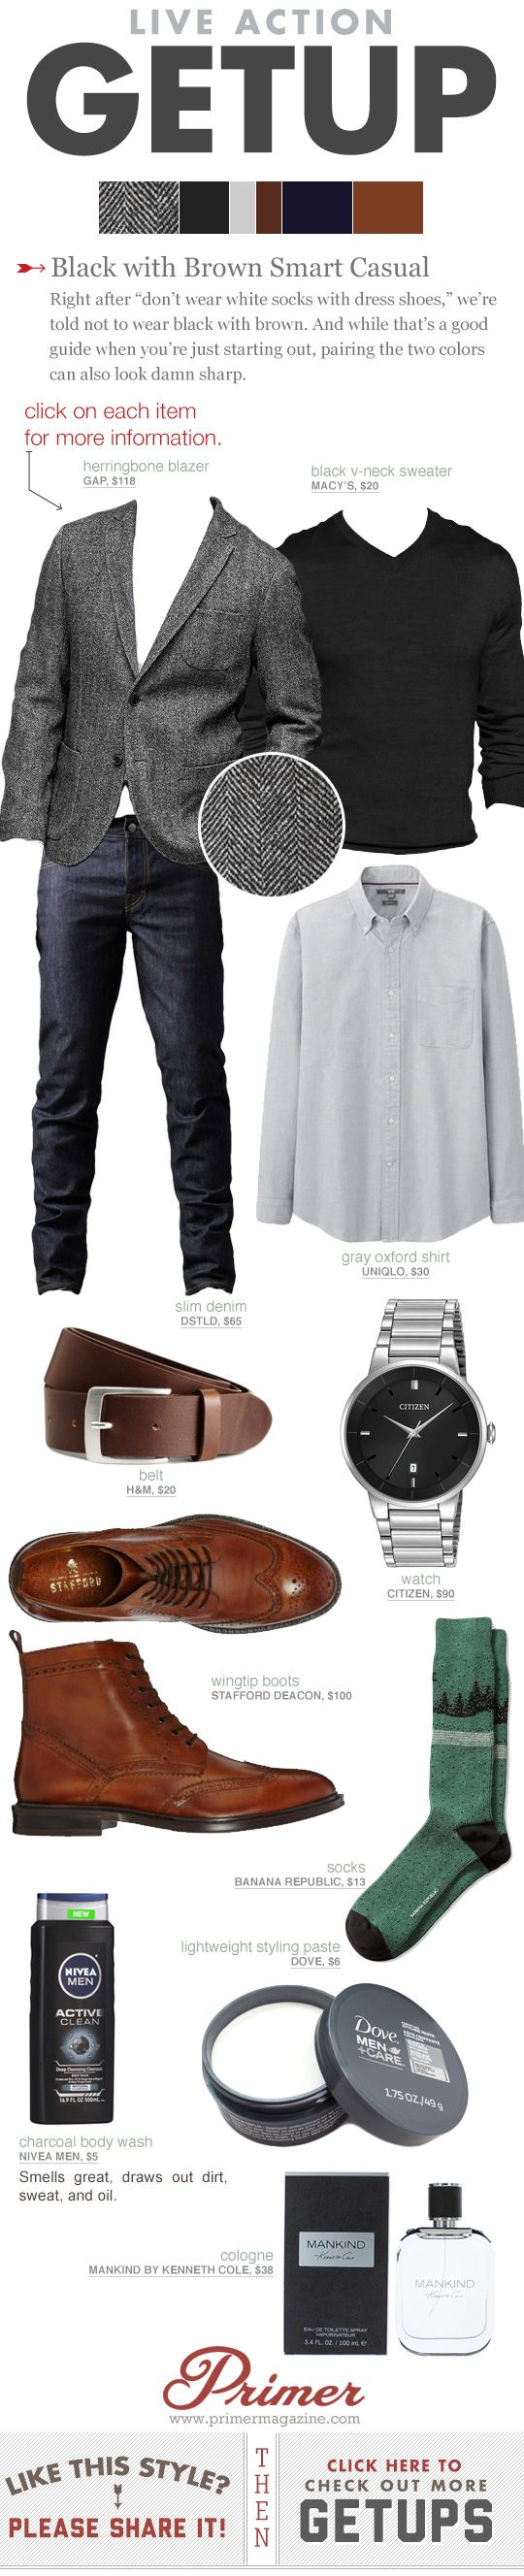 "Right after ""don't wear white socks with dress shoes,"" we're told not to wear black with brown. And while that's a good guide when you're just starting out, pairing the two colors can also look damn sharp. #Getup #menswear #GuysGuide"